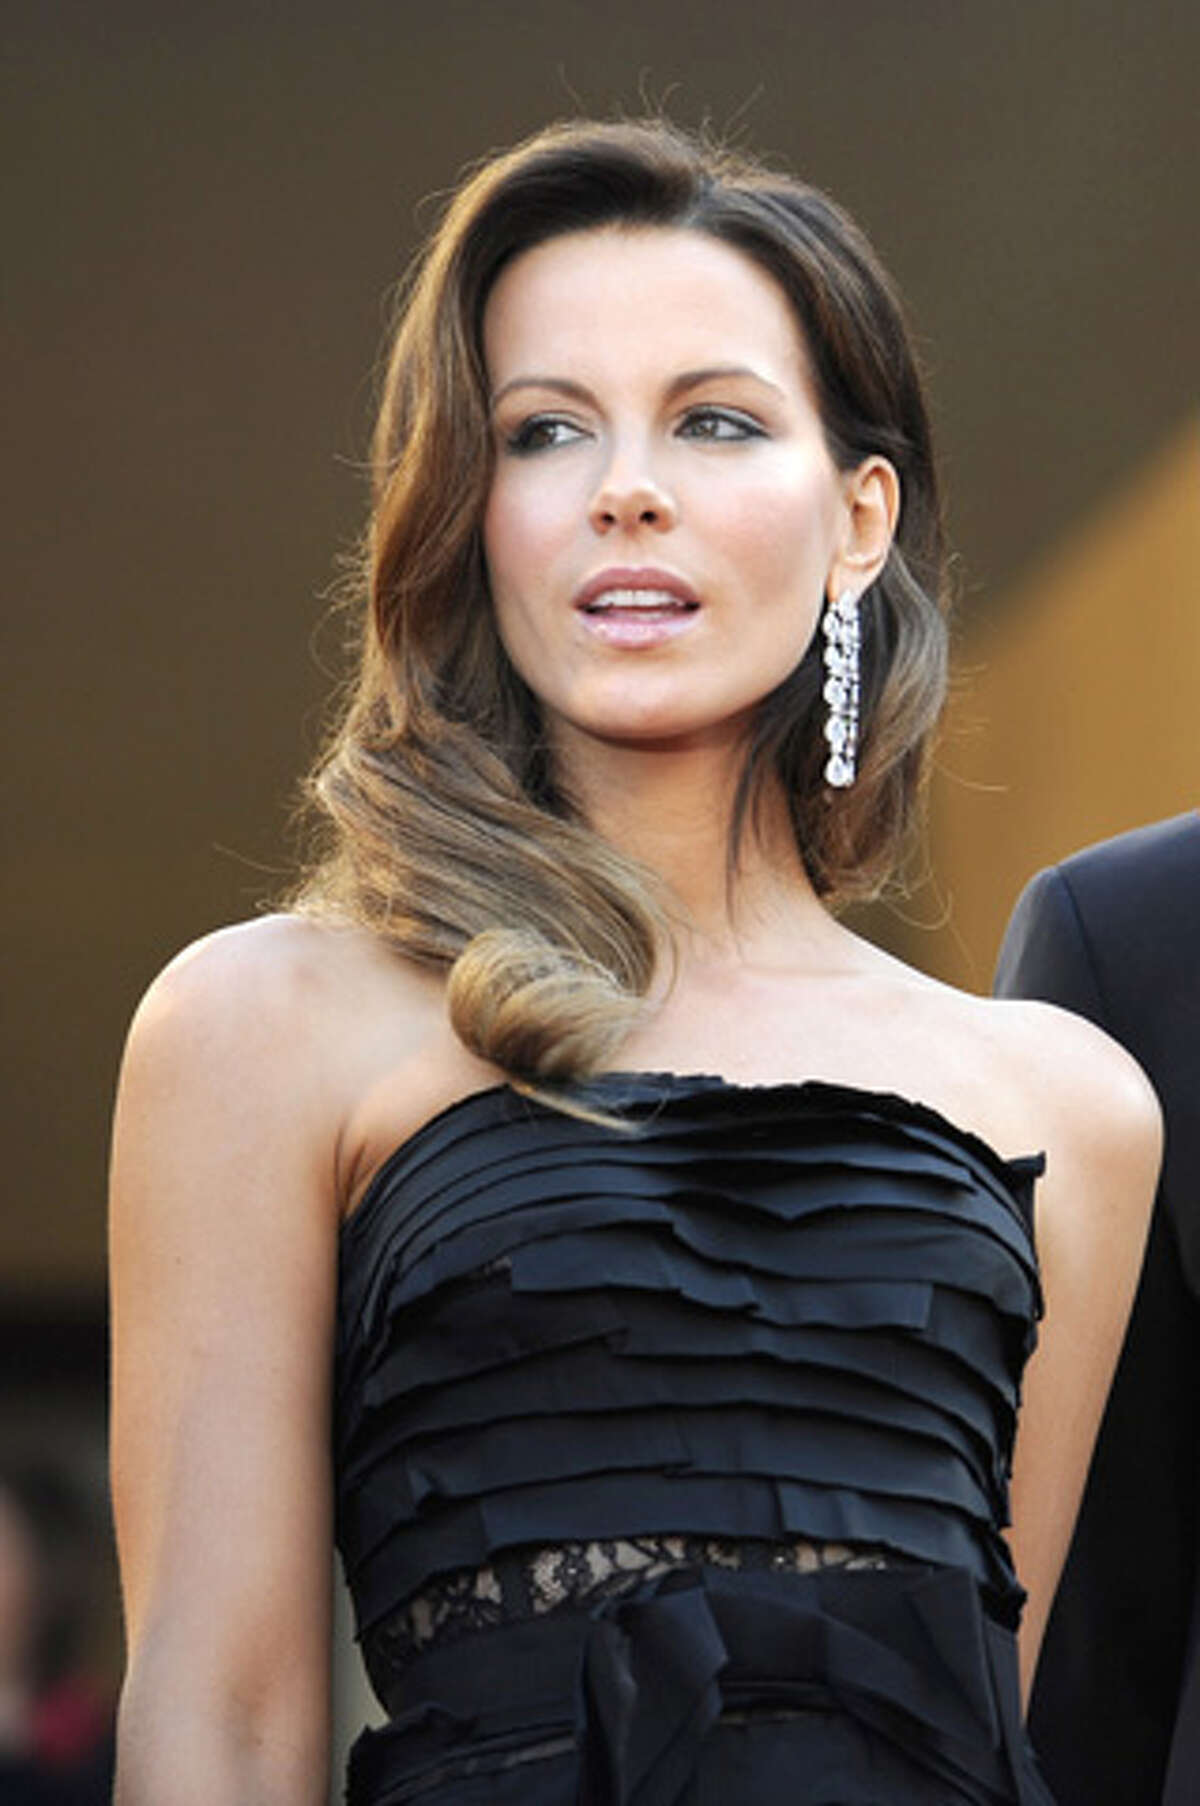 Kate Beckinsale, May 23, 2010, age 36.